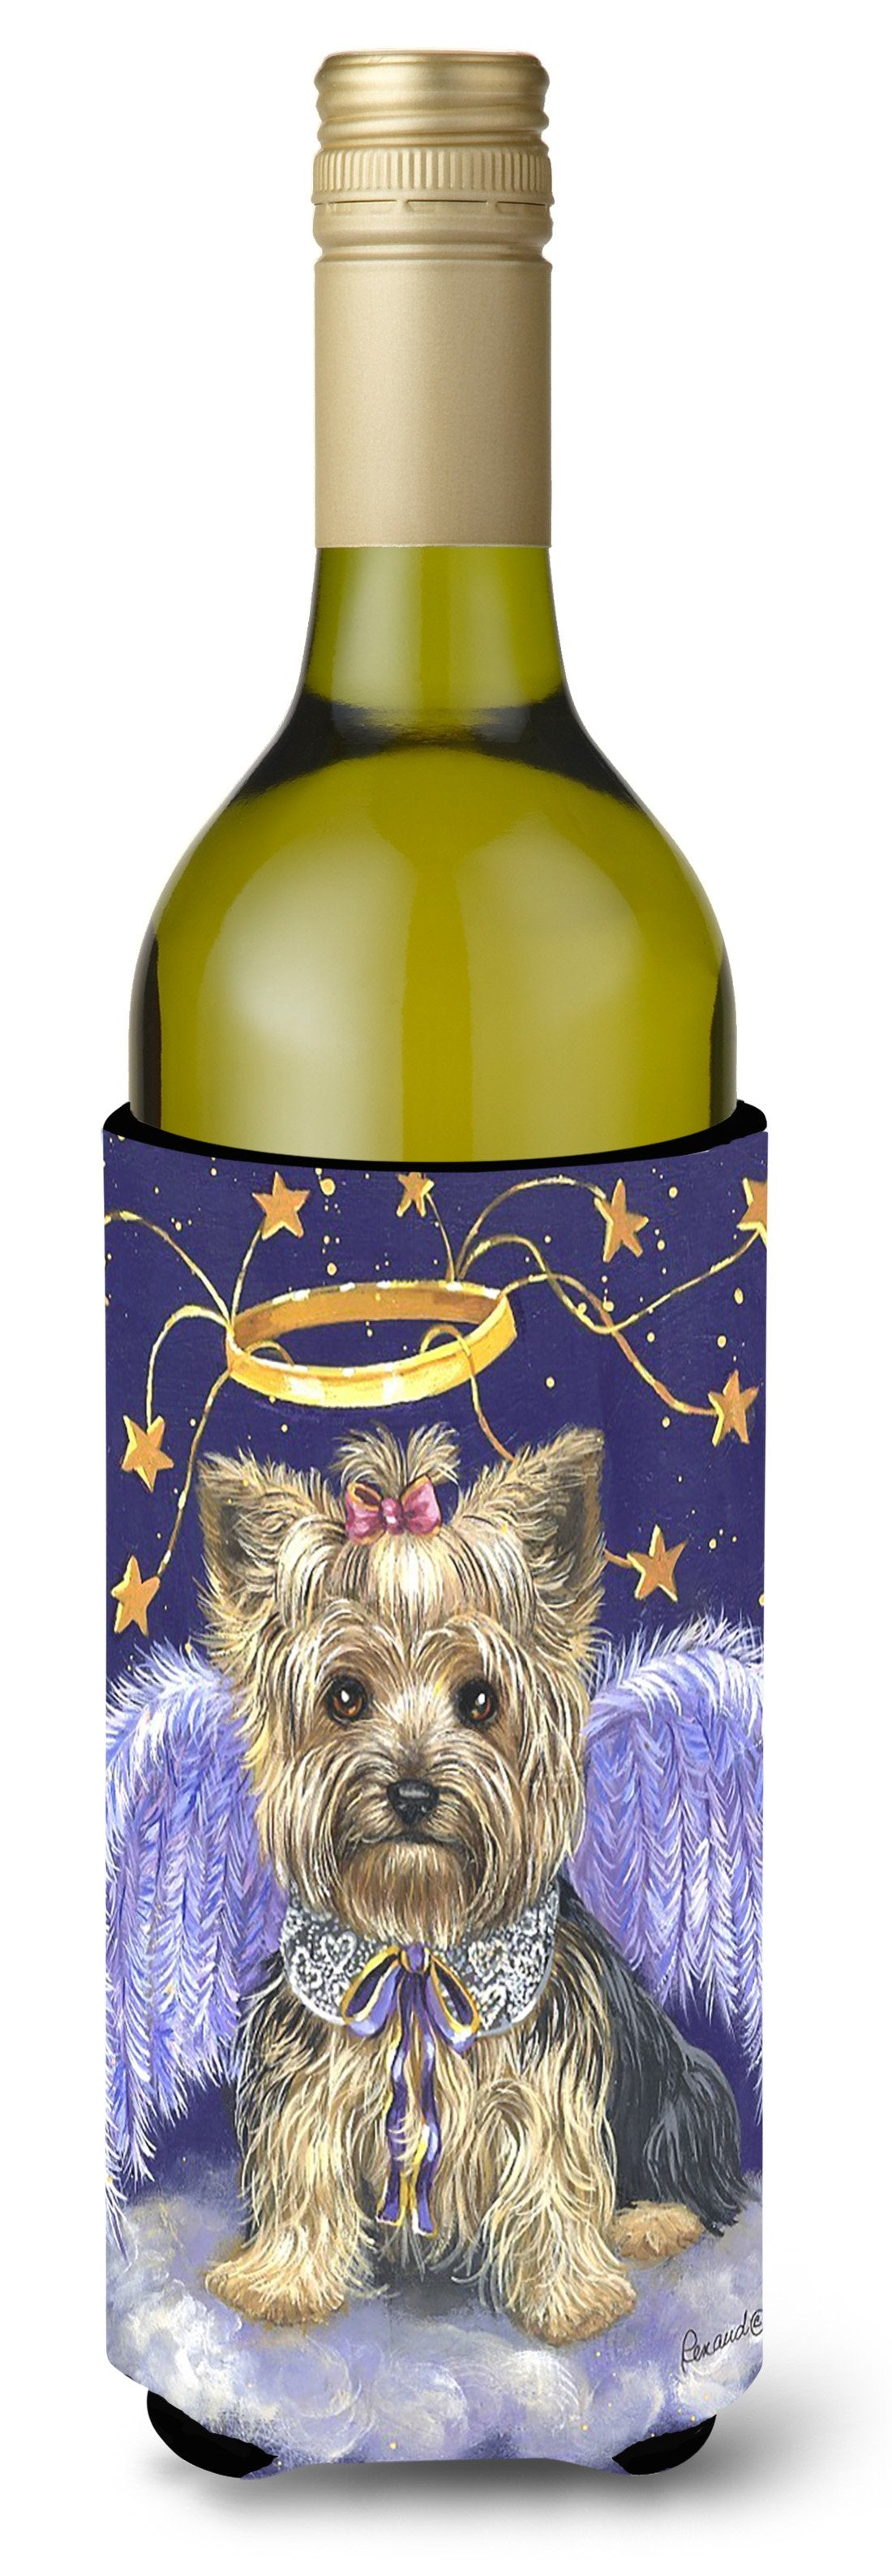 Yorkie Christmas Angel Wine Bottle Hugger PPP3243LITERK by Caroline's Treasures